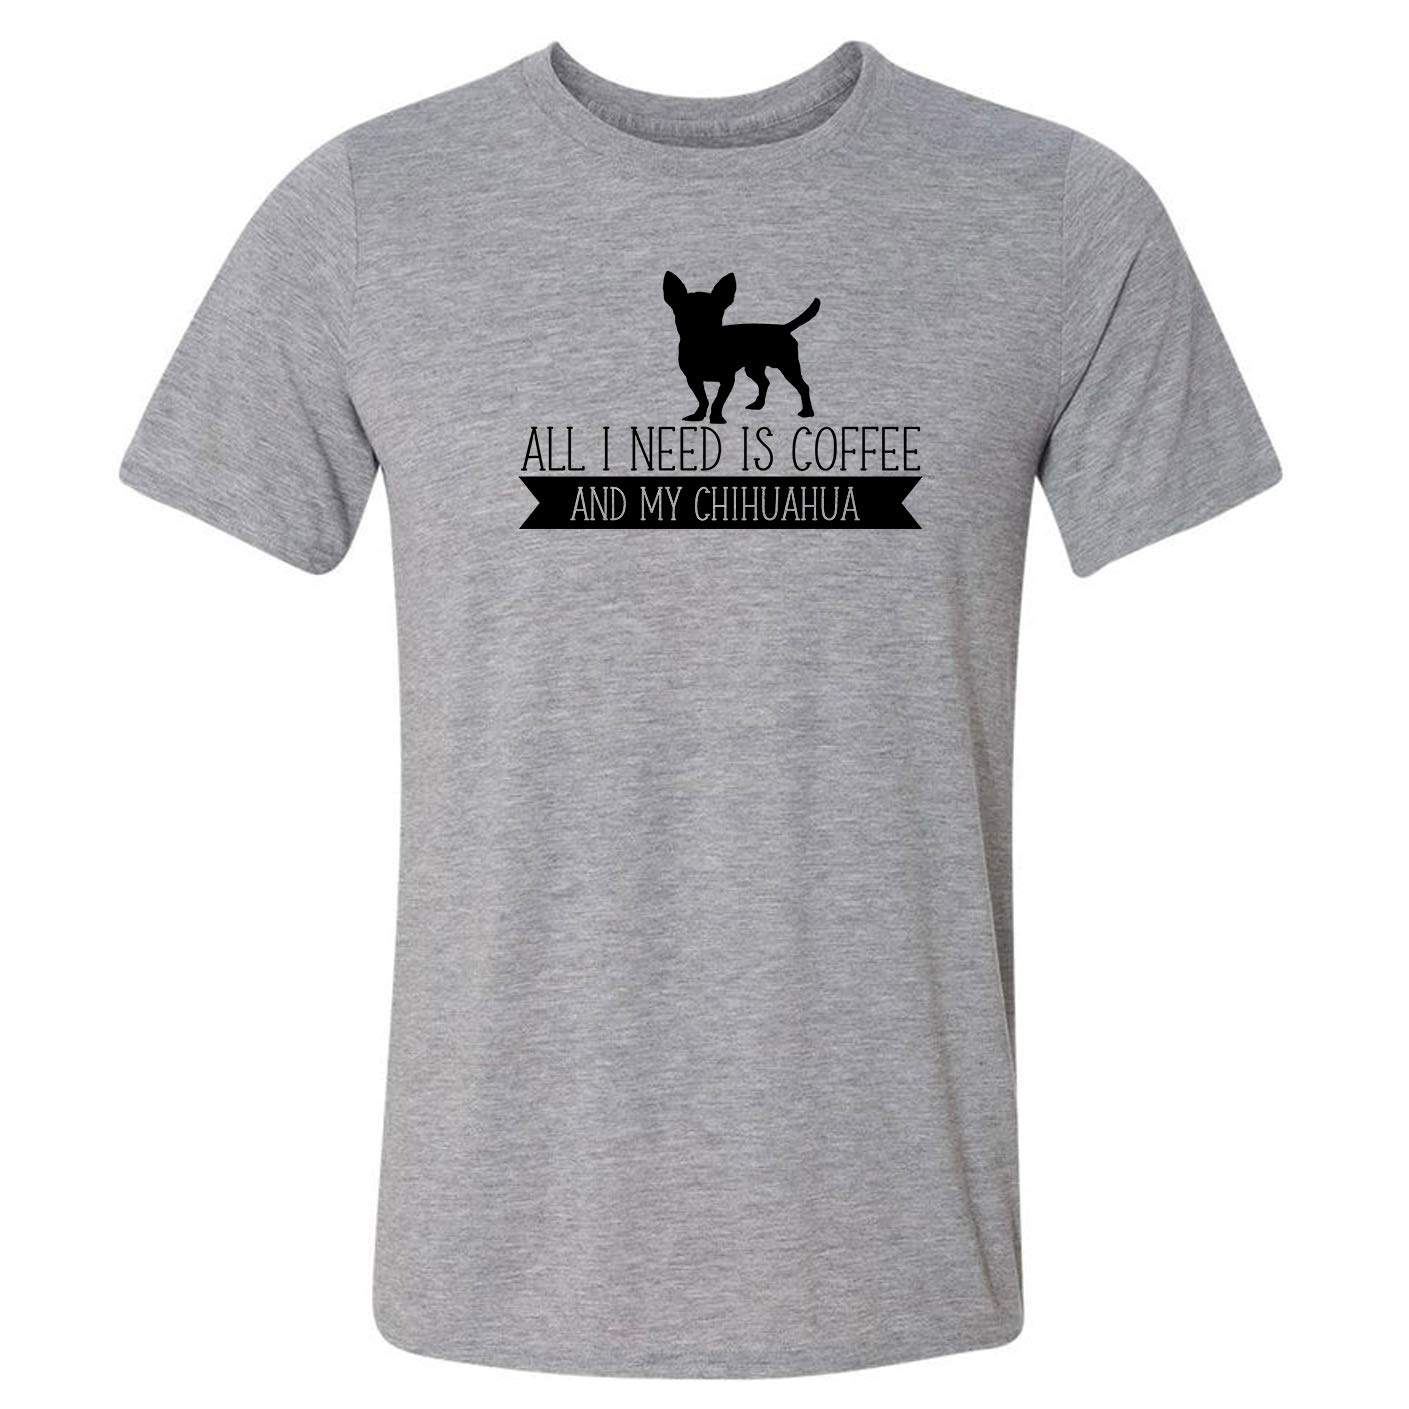 All I Need is Coffee Chihuahua New Shipping Free Shipping Max 58% OFF T-Shirt My and